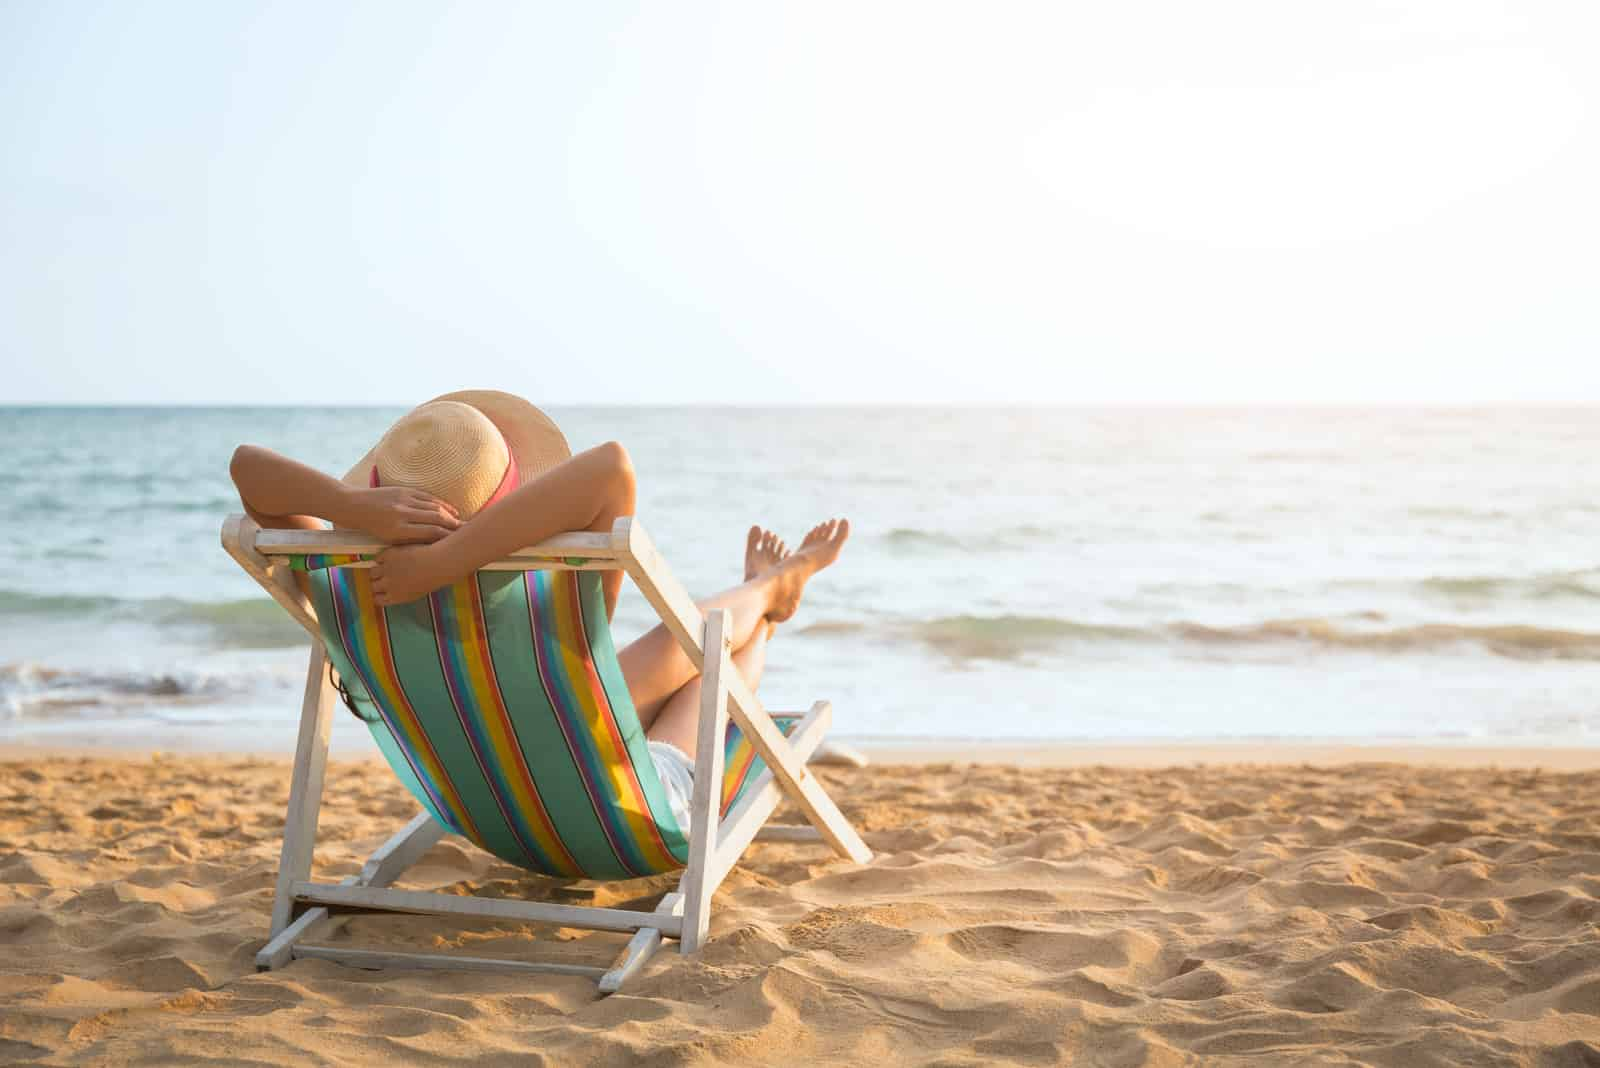 the woman is lying on the beach